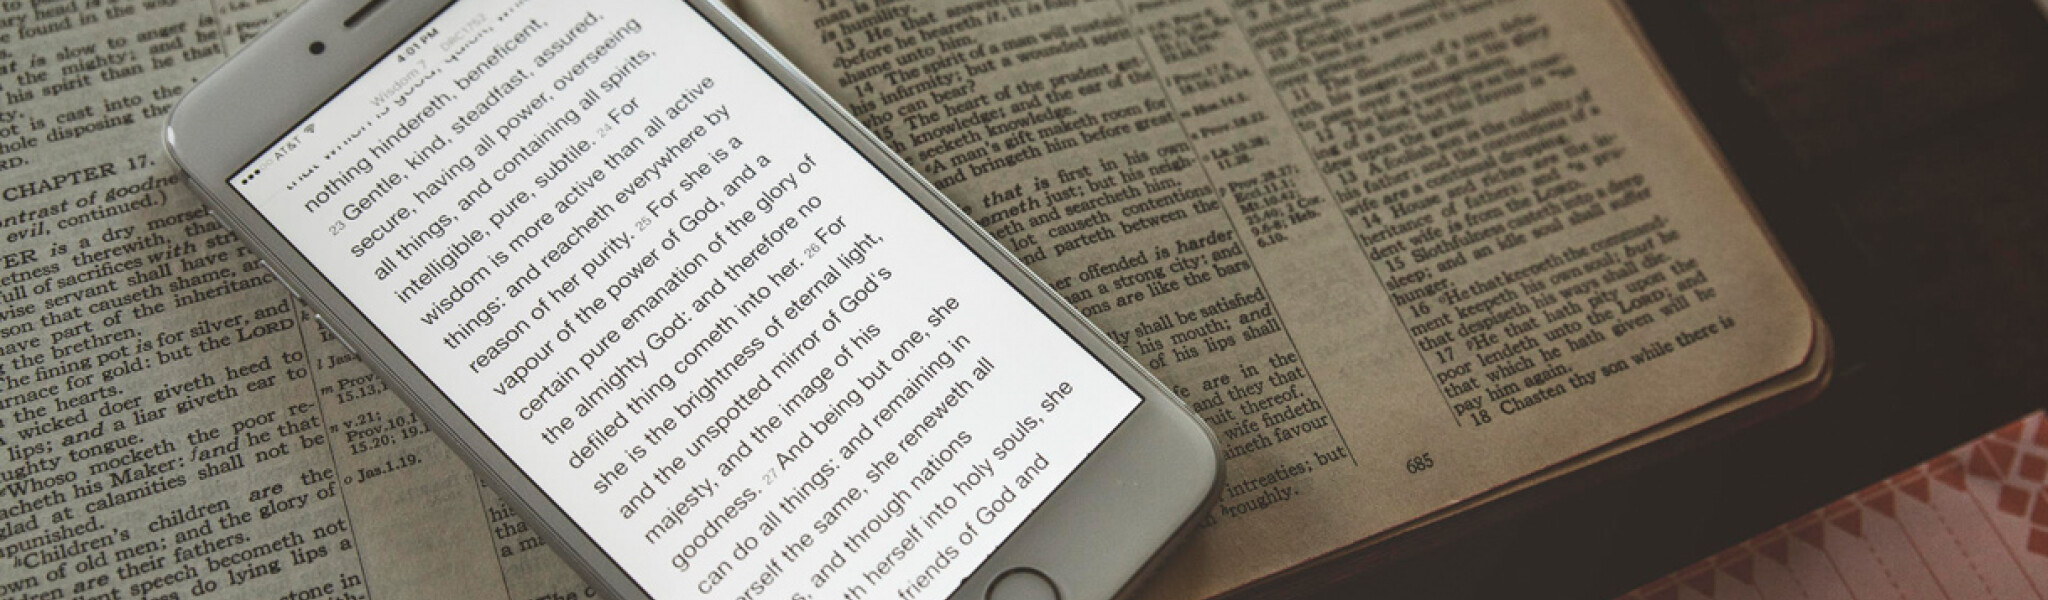 Weekly Pastor Bible study videos, teen devotions, kids Sunday School lessons, and more!